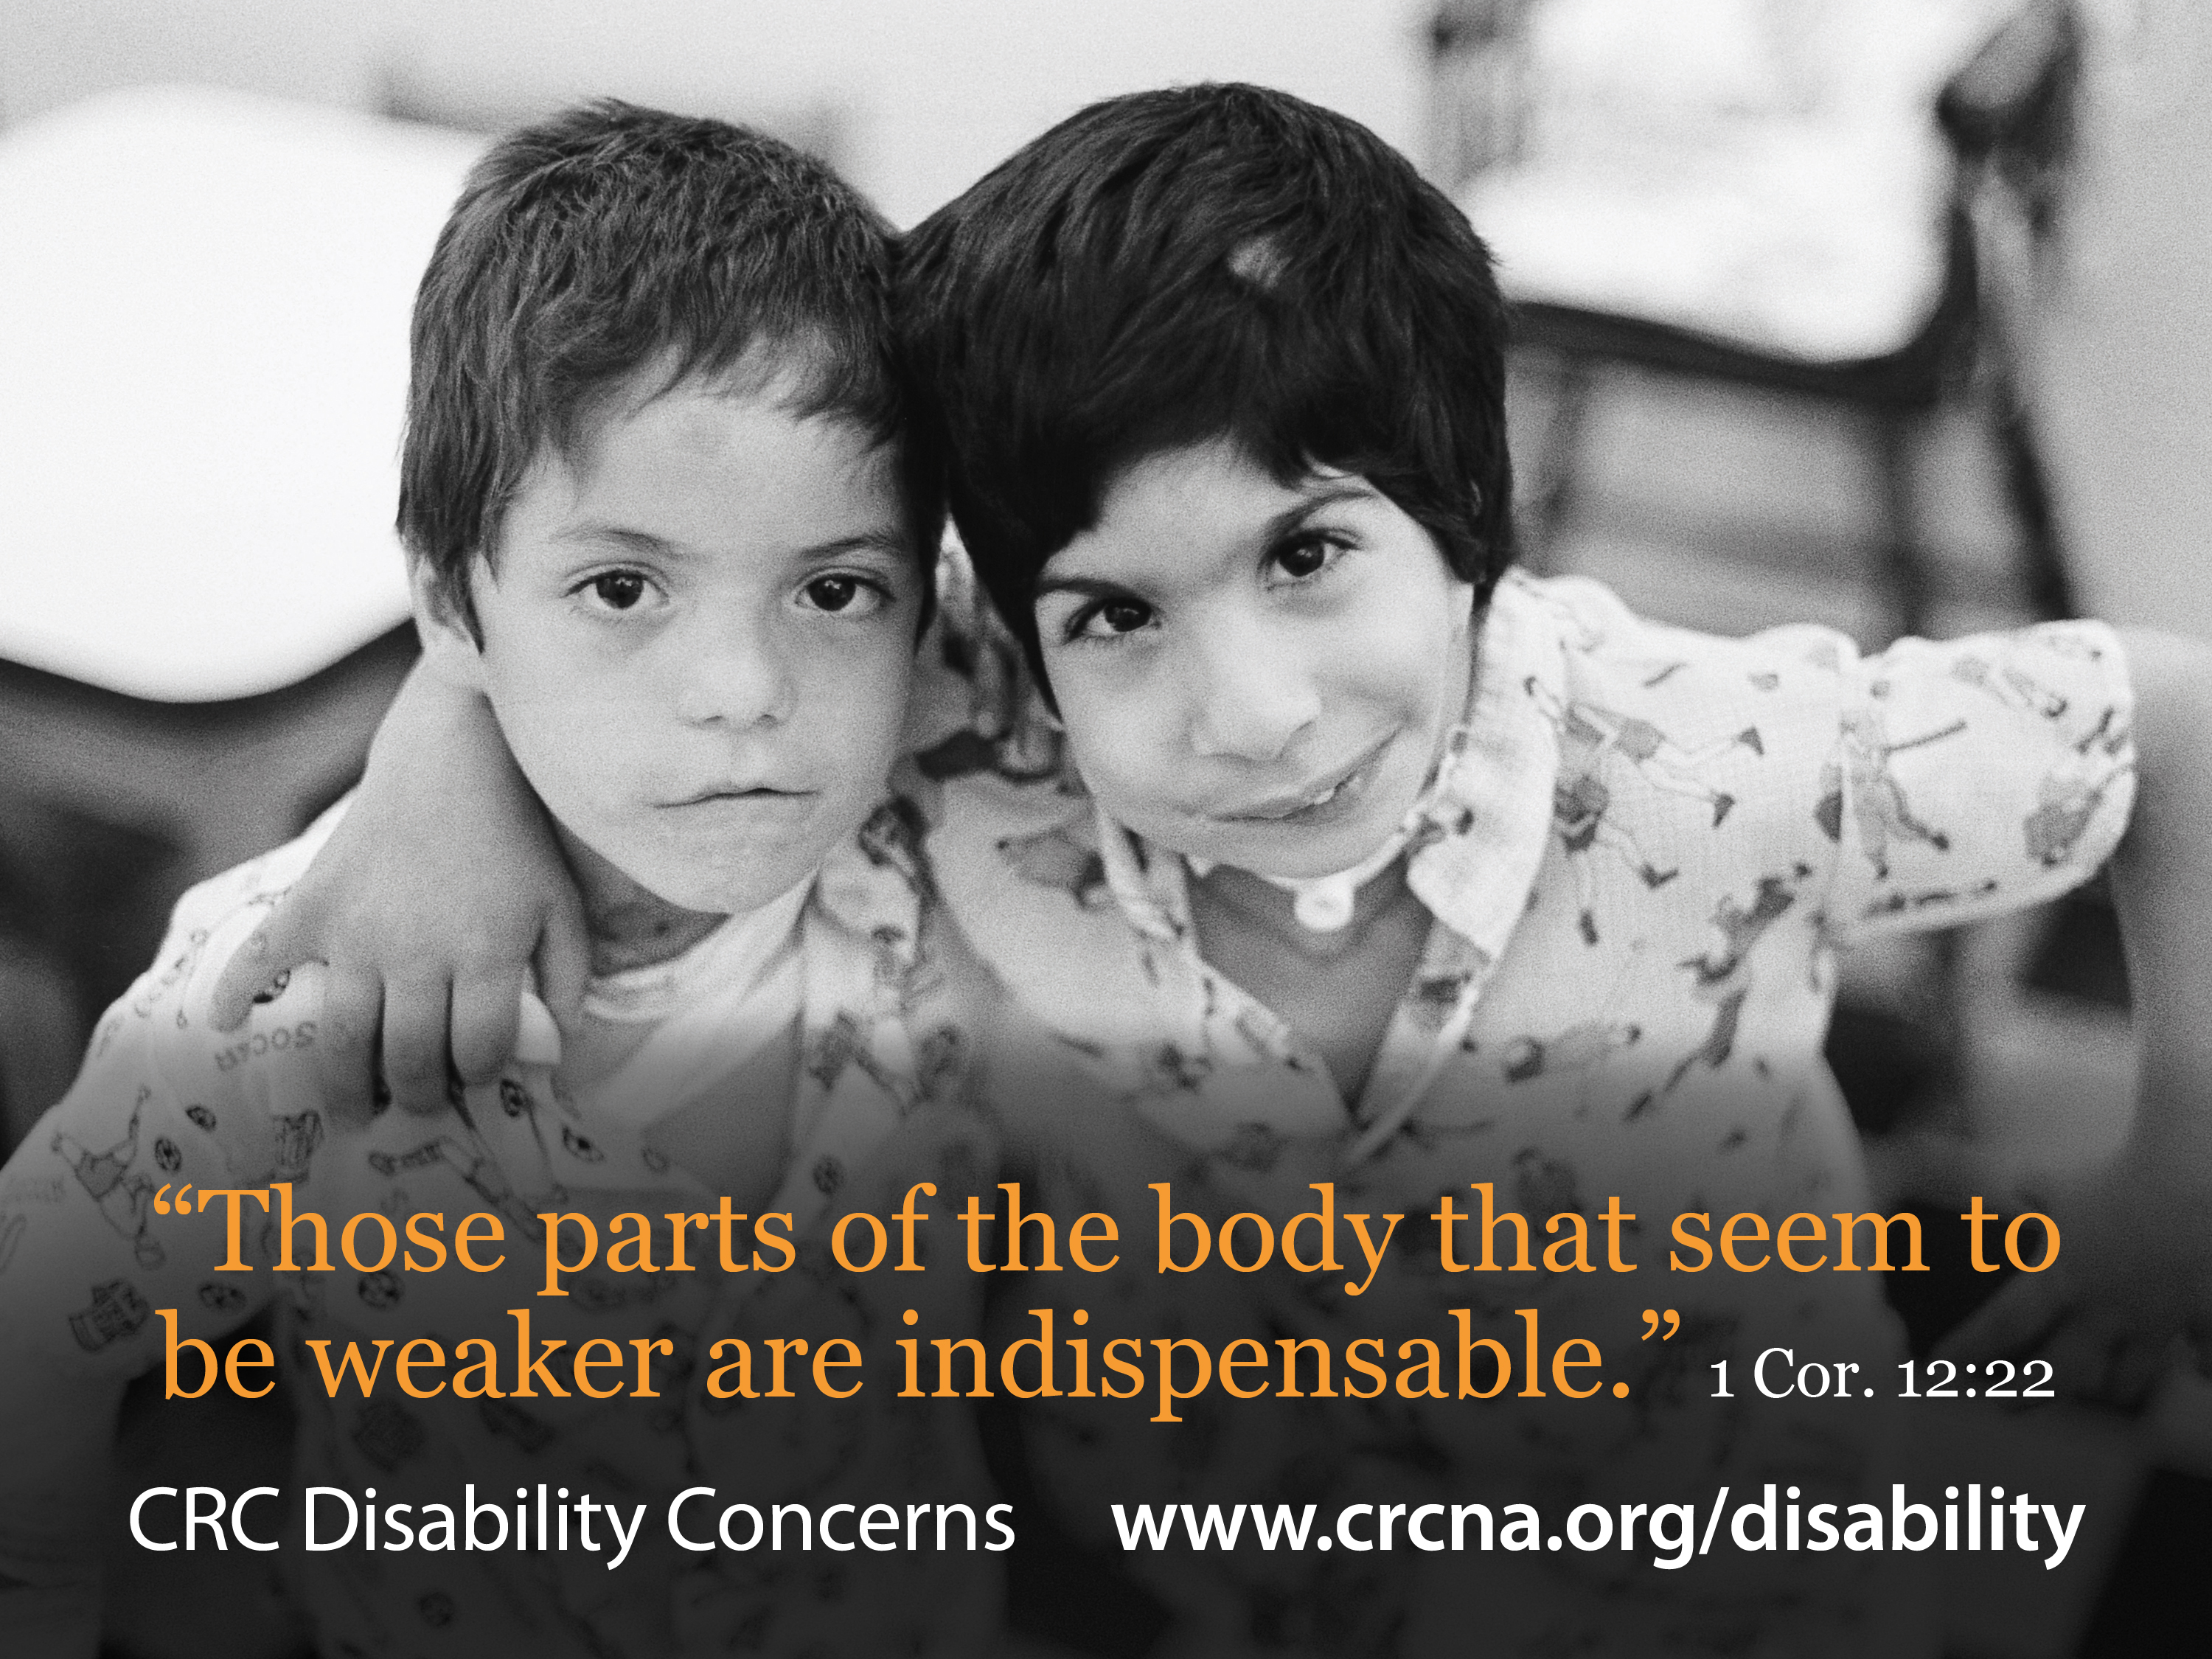 Two boys with visible disabilities